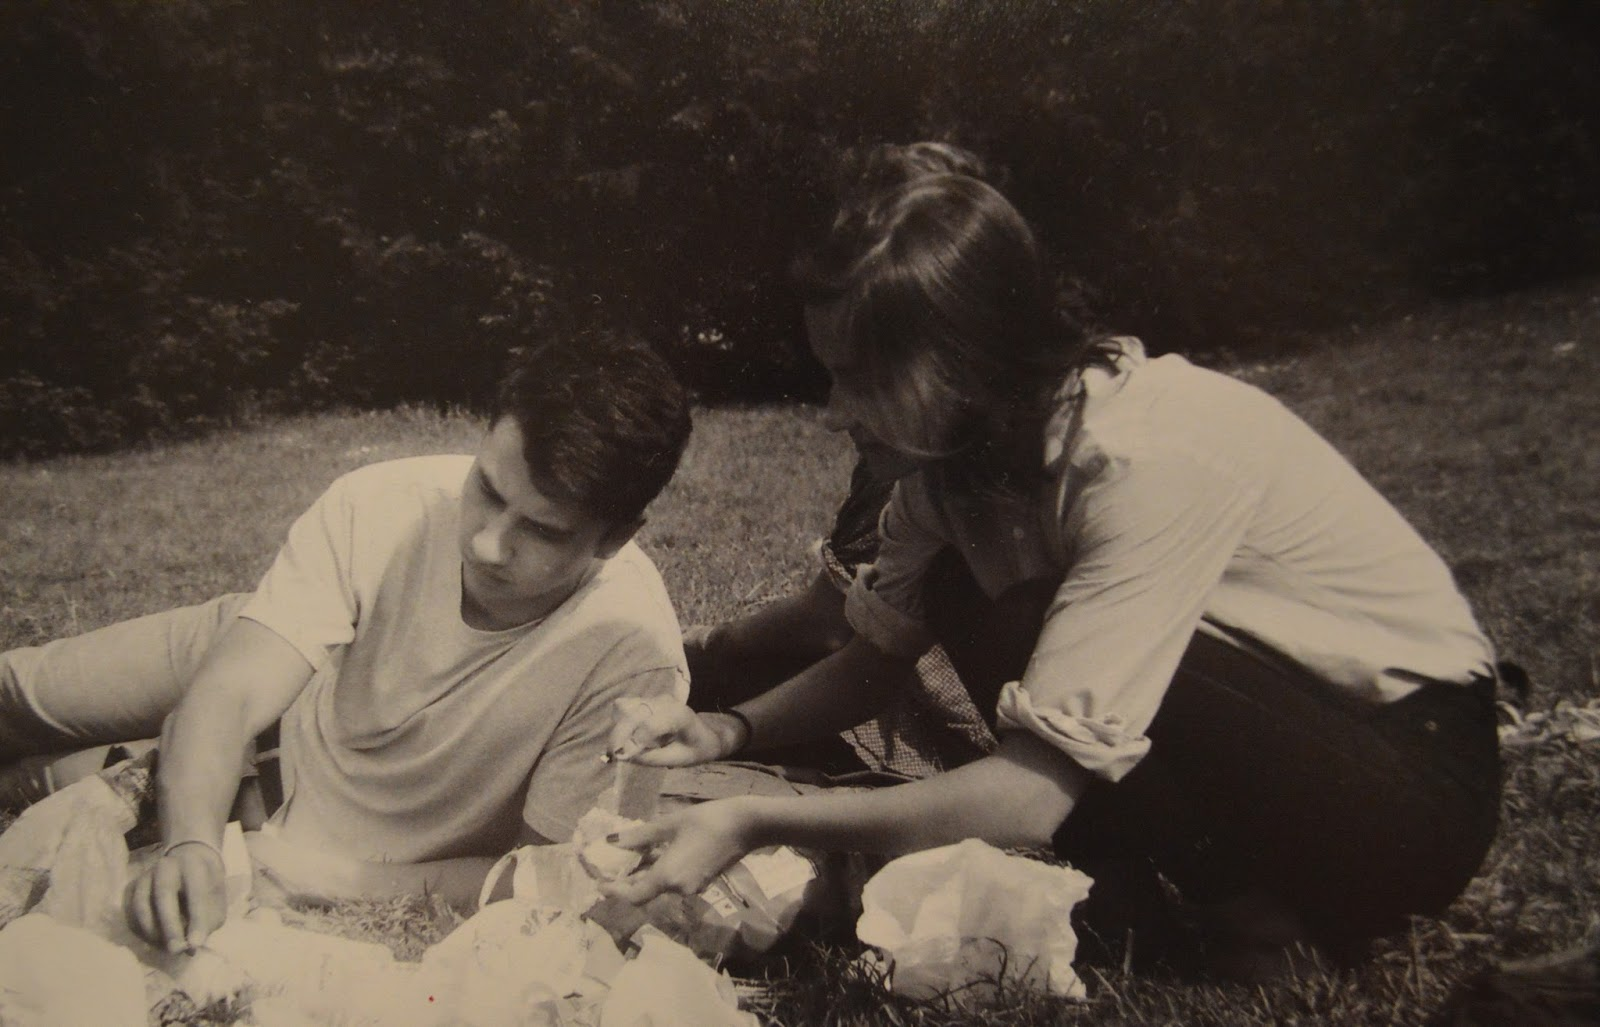 Photography: Friends picnicing in Buttes Chaumont, Paris